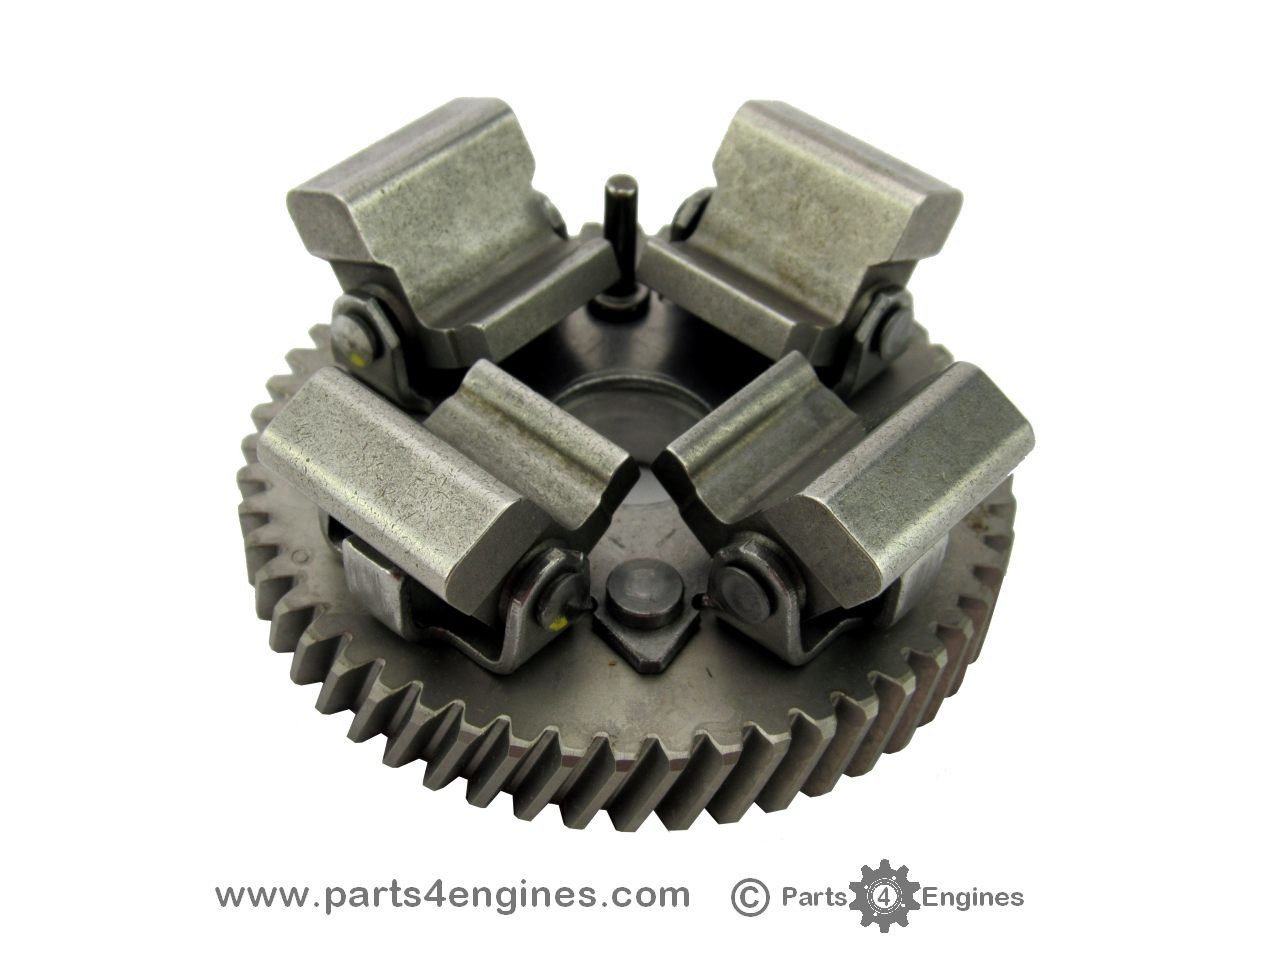 Volvo Penta MD2030 camshaft gear, from parts4engines.com